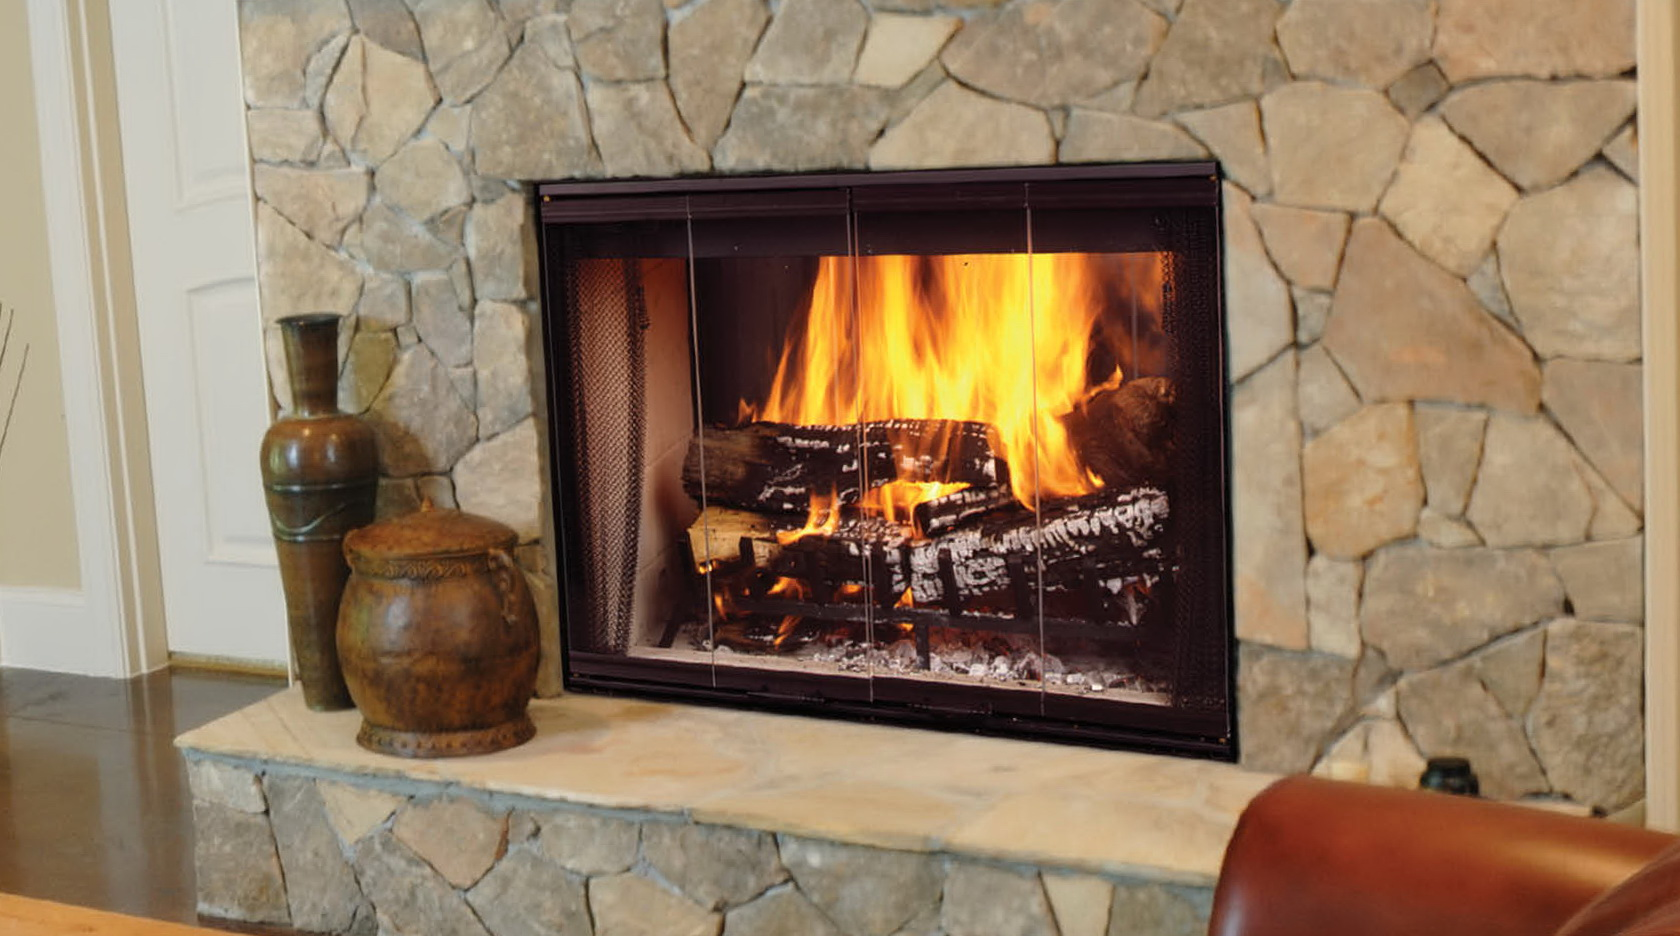 Wood Burning Insert For Prefab Fireplace Home Design Ideas